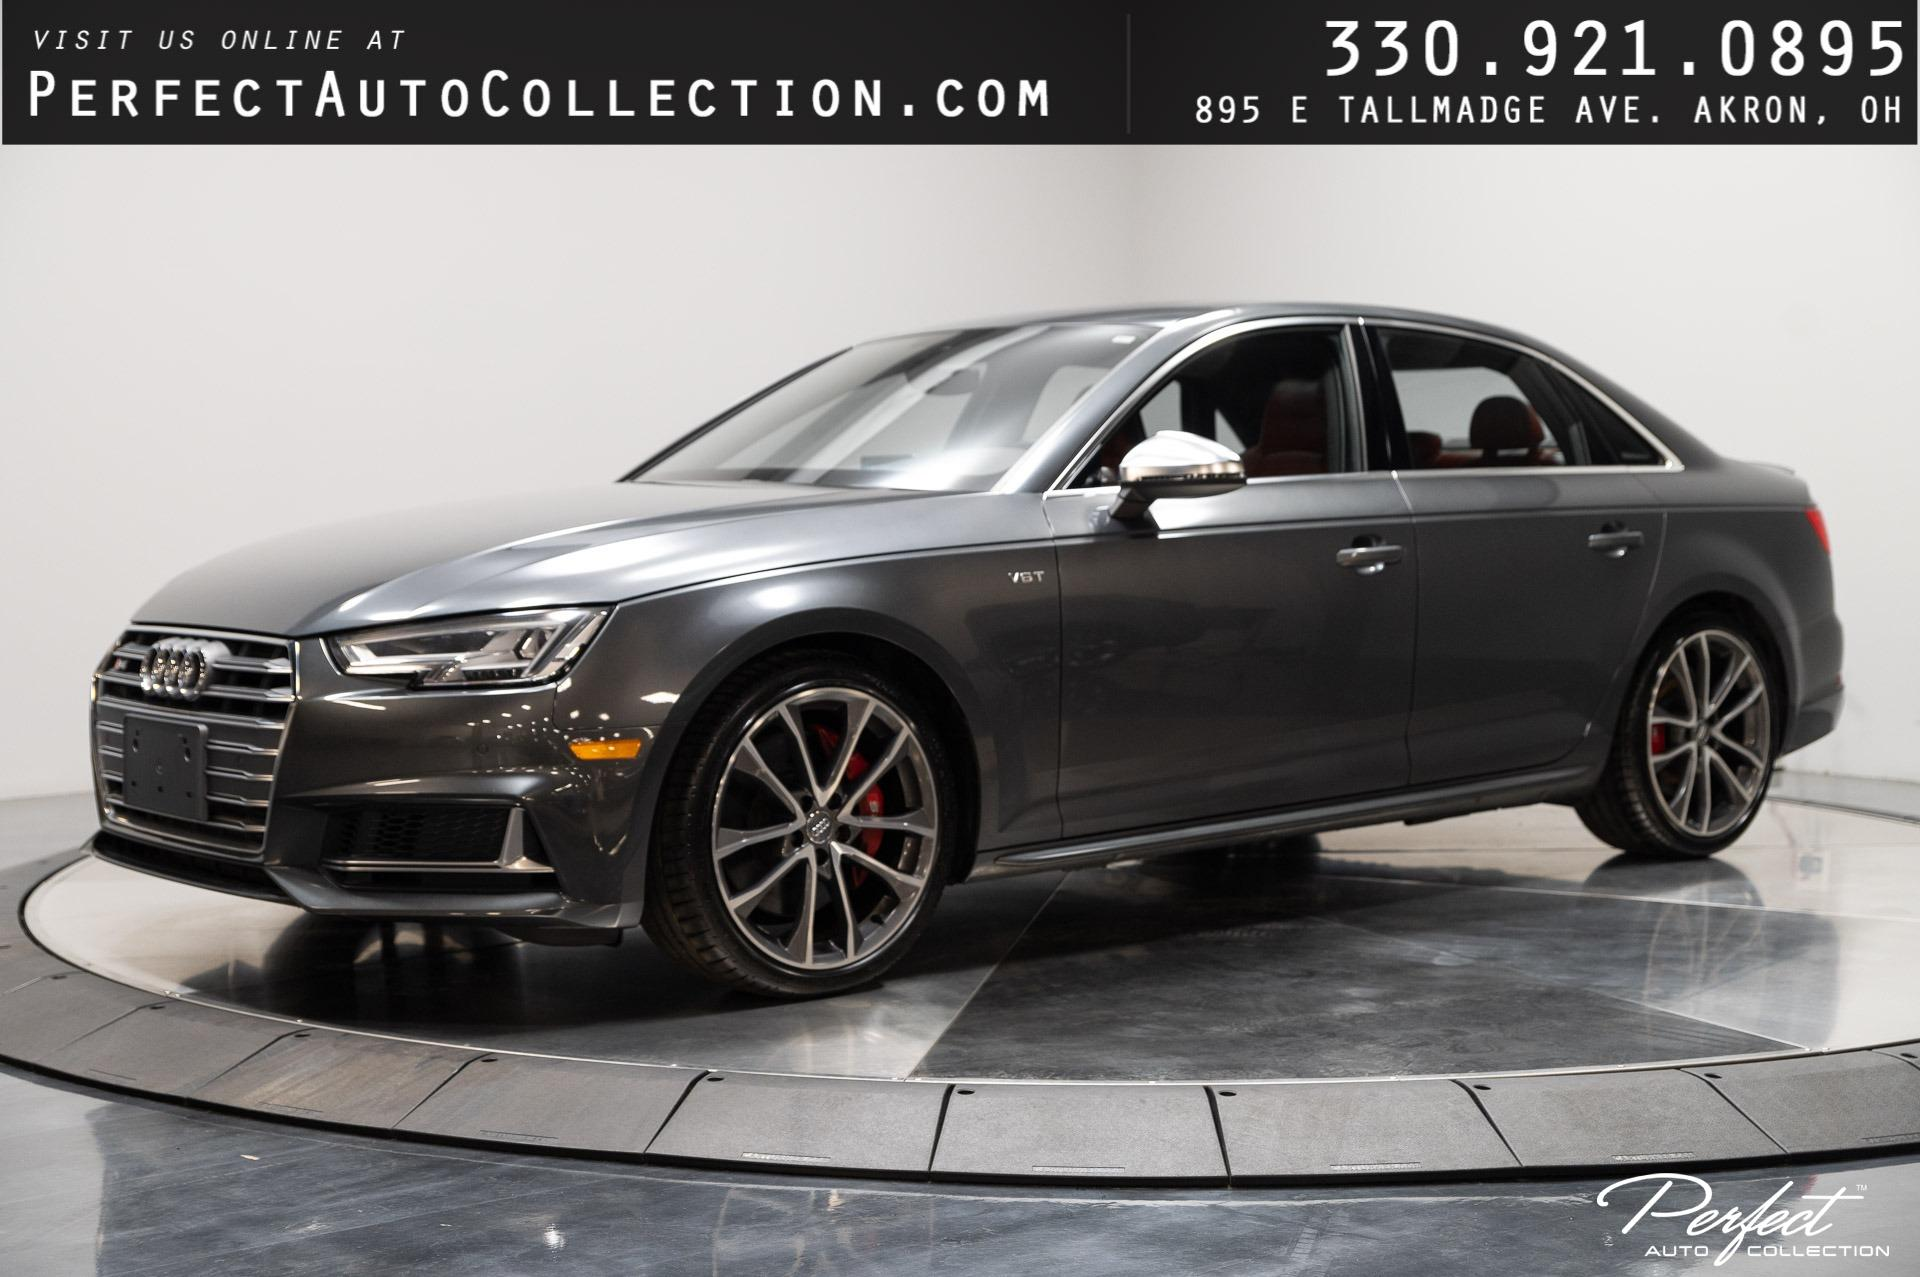 Used 2018 Audi S4 3.0T quattro Premium Plus for sale Sold at Perfect Auto Collection in Akron OH 44310 1